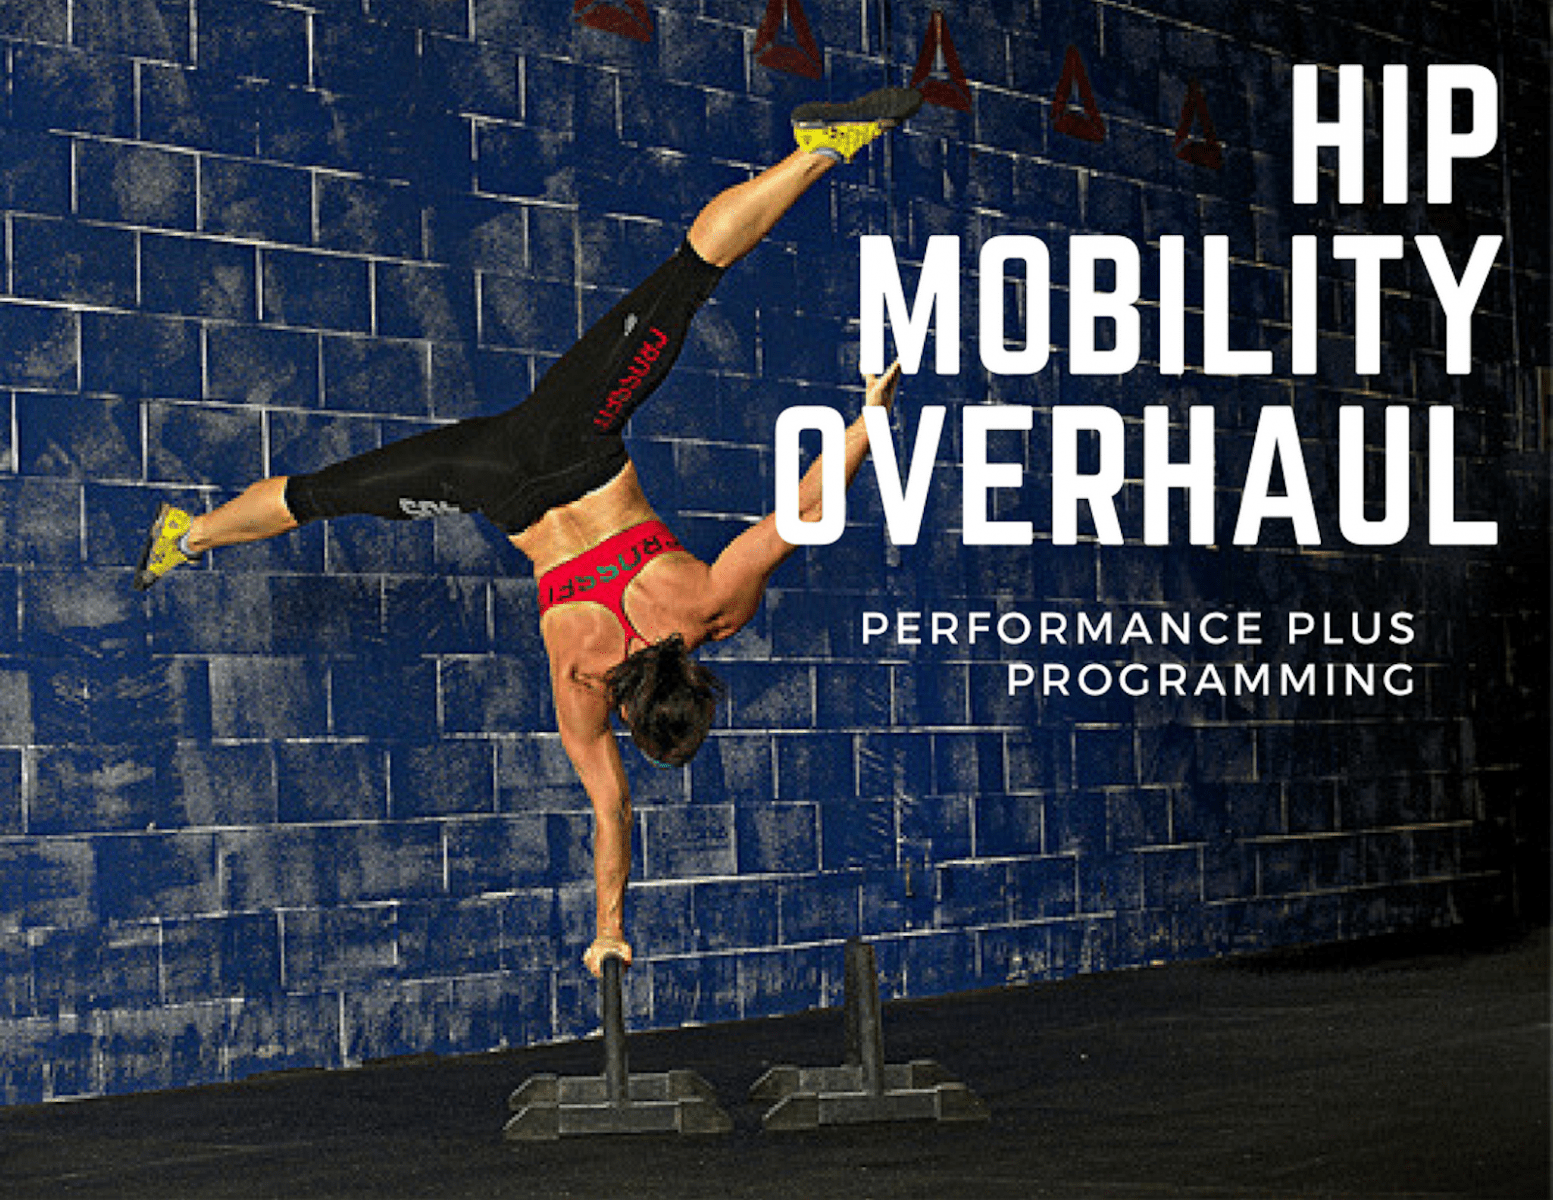 hip mobility overhaul